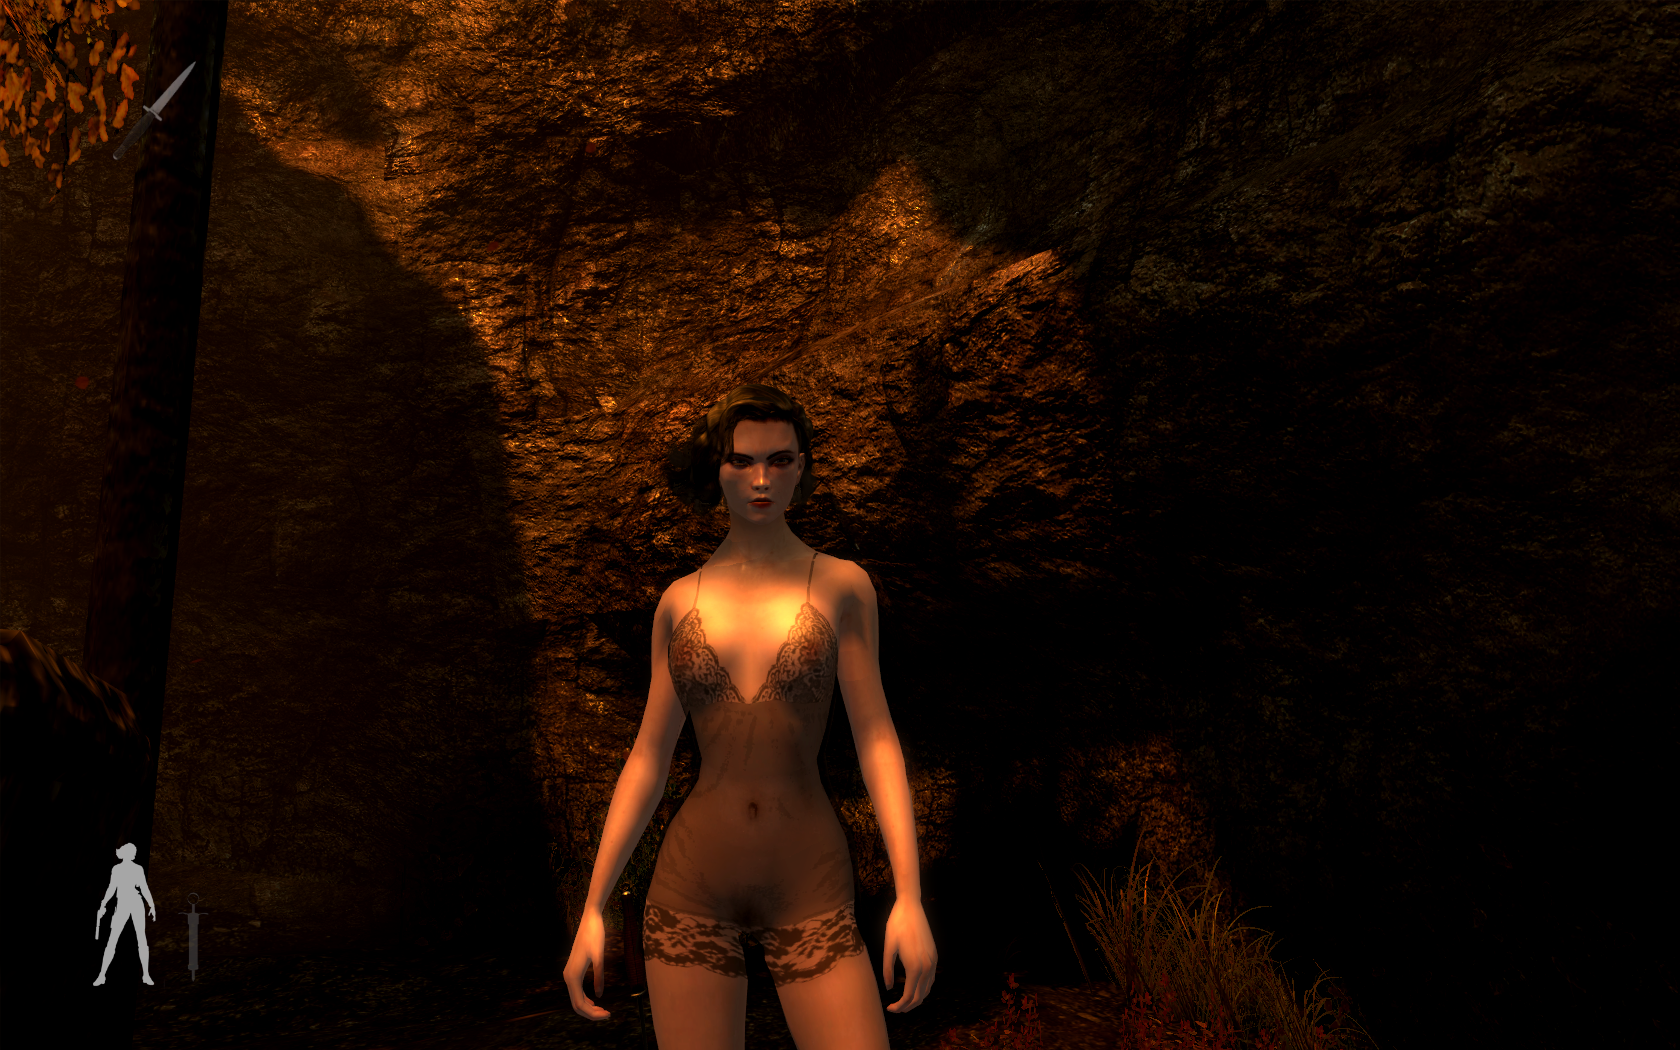 Assassin's creed nude mod pics adult photos